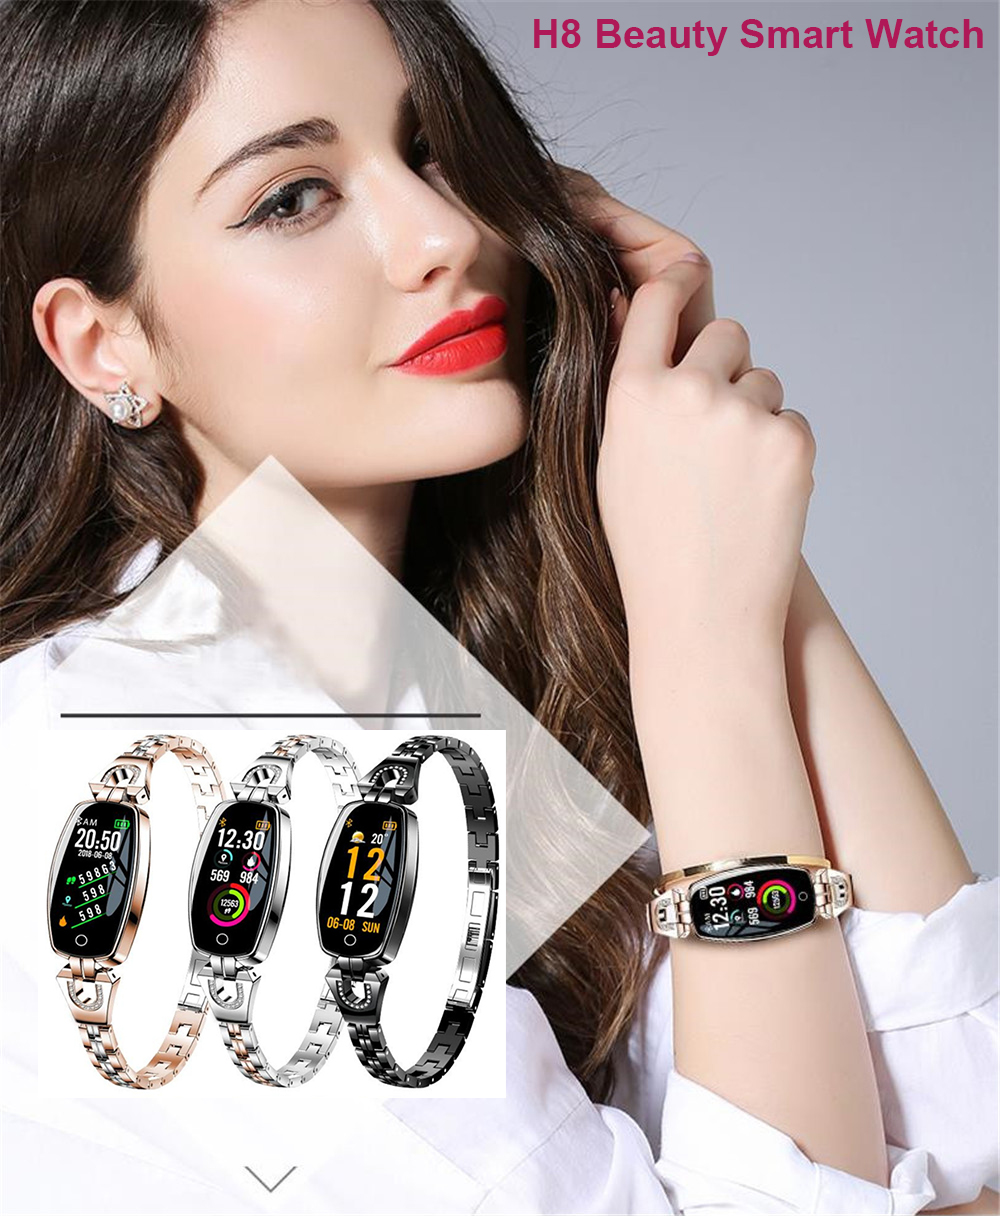 2019 H8 Women Lady Fashion Fitness Smart Band Bracelet Touch Screen Blood Pressure Heart Rate Sleep Monitor for Android IOS